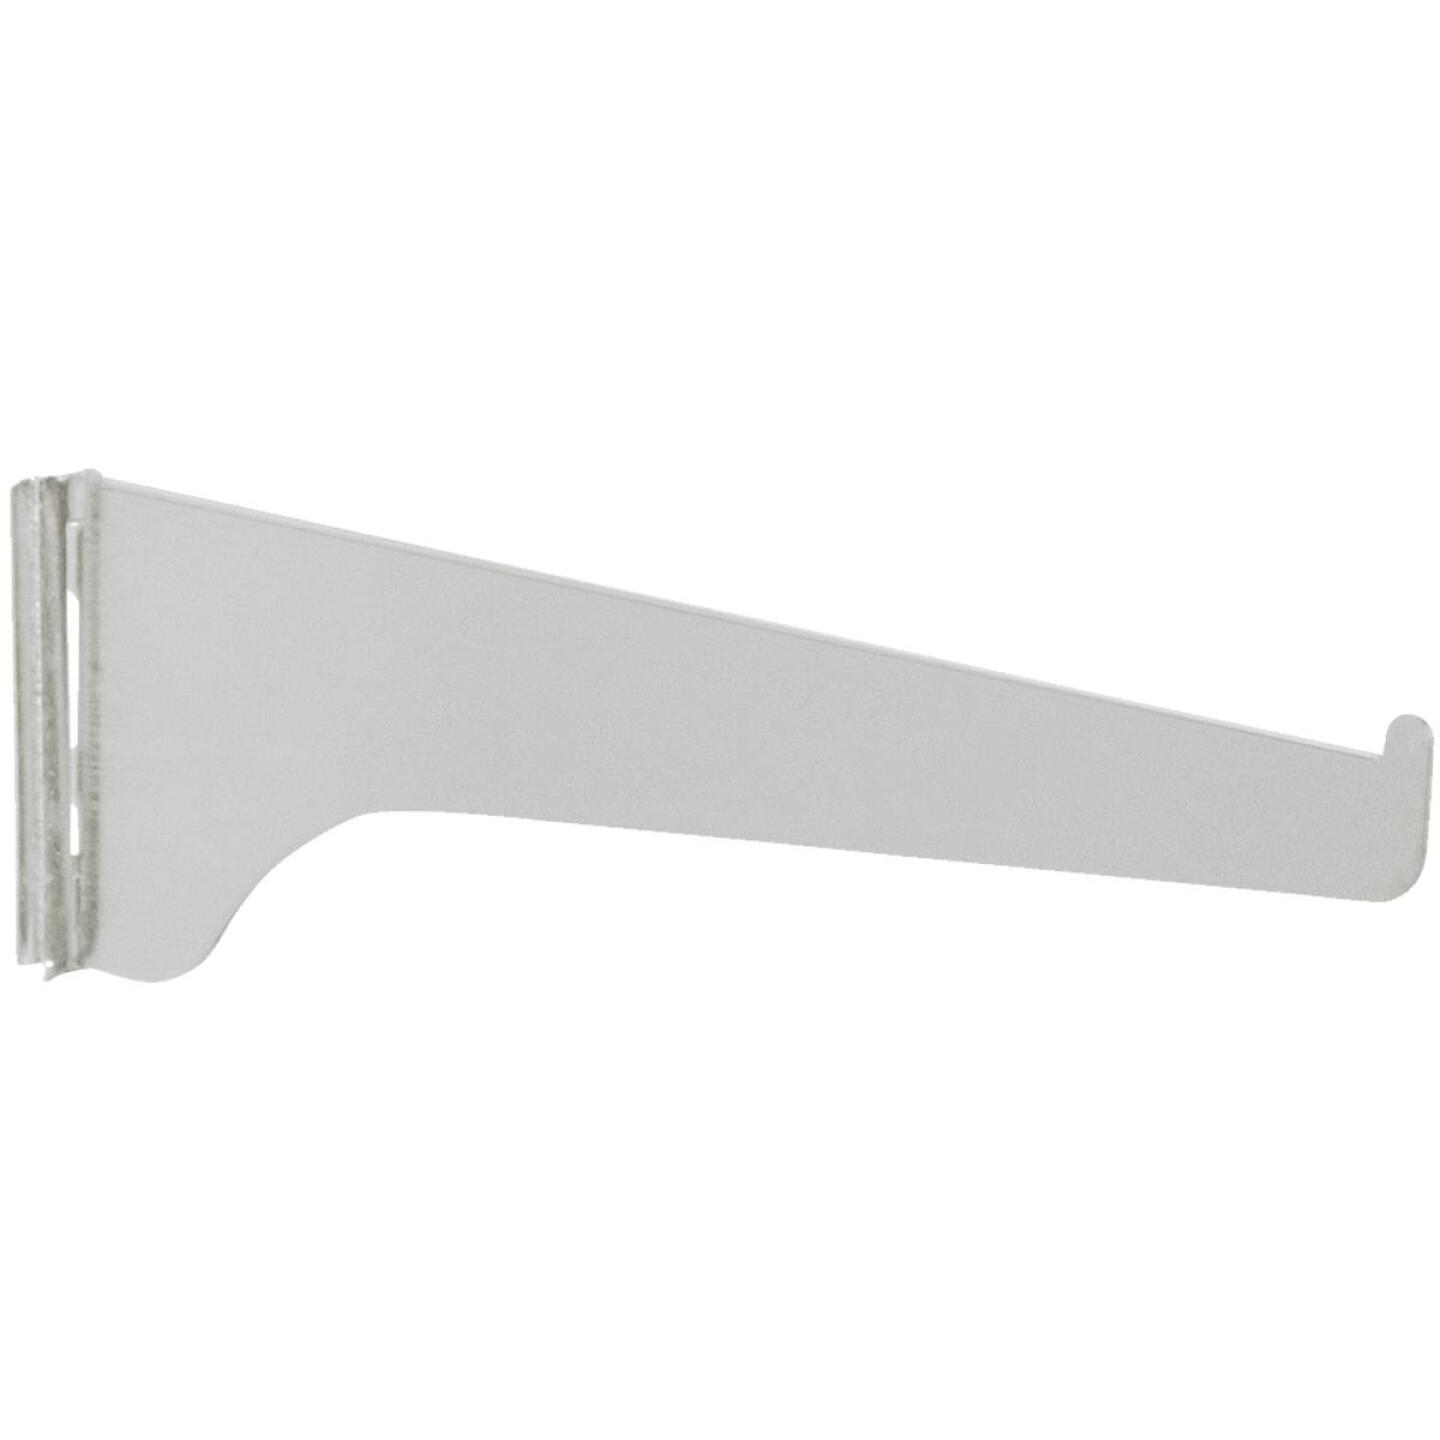 Knape & Vogt 180 Series 18 In. Anochrome Steel Regular-Duty Single-Slot Shelf Bracket Image 1